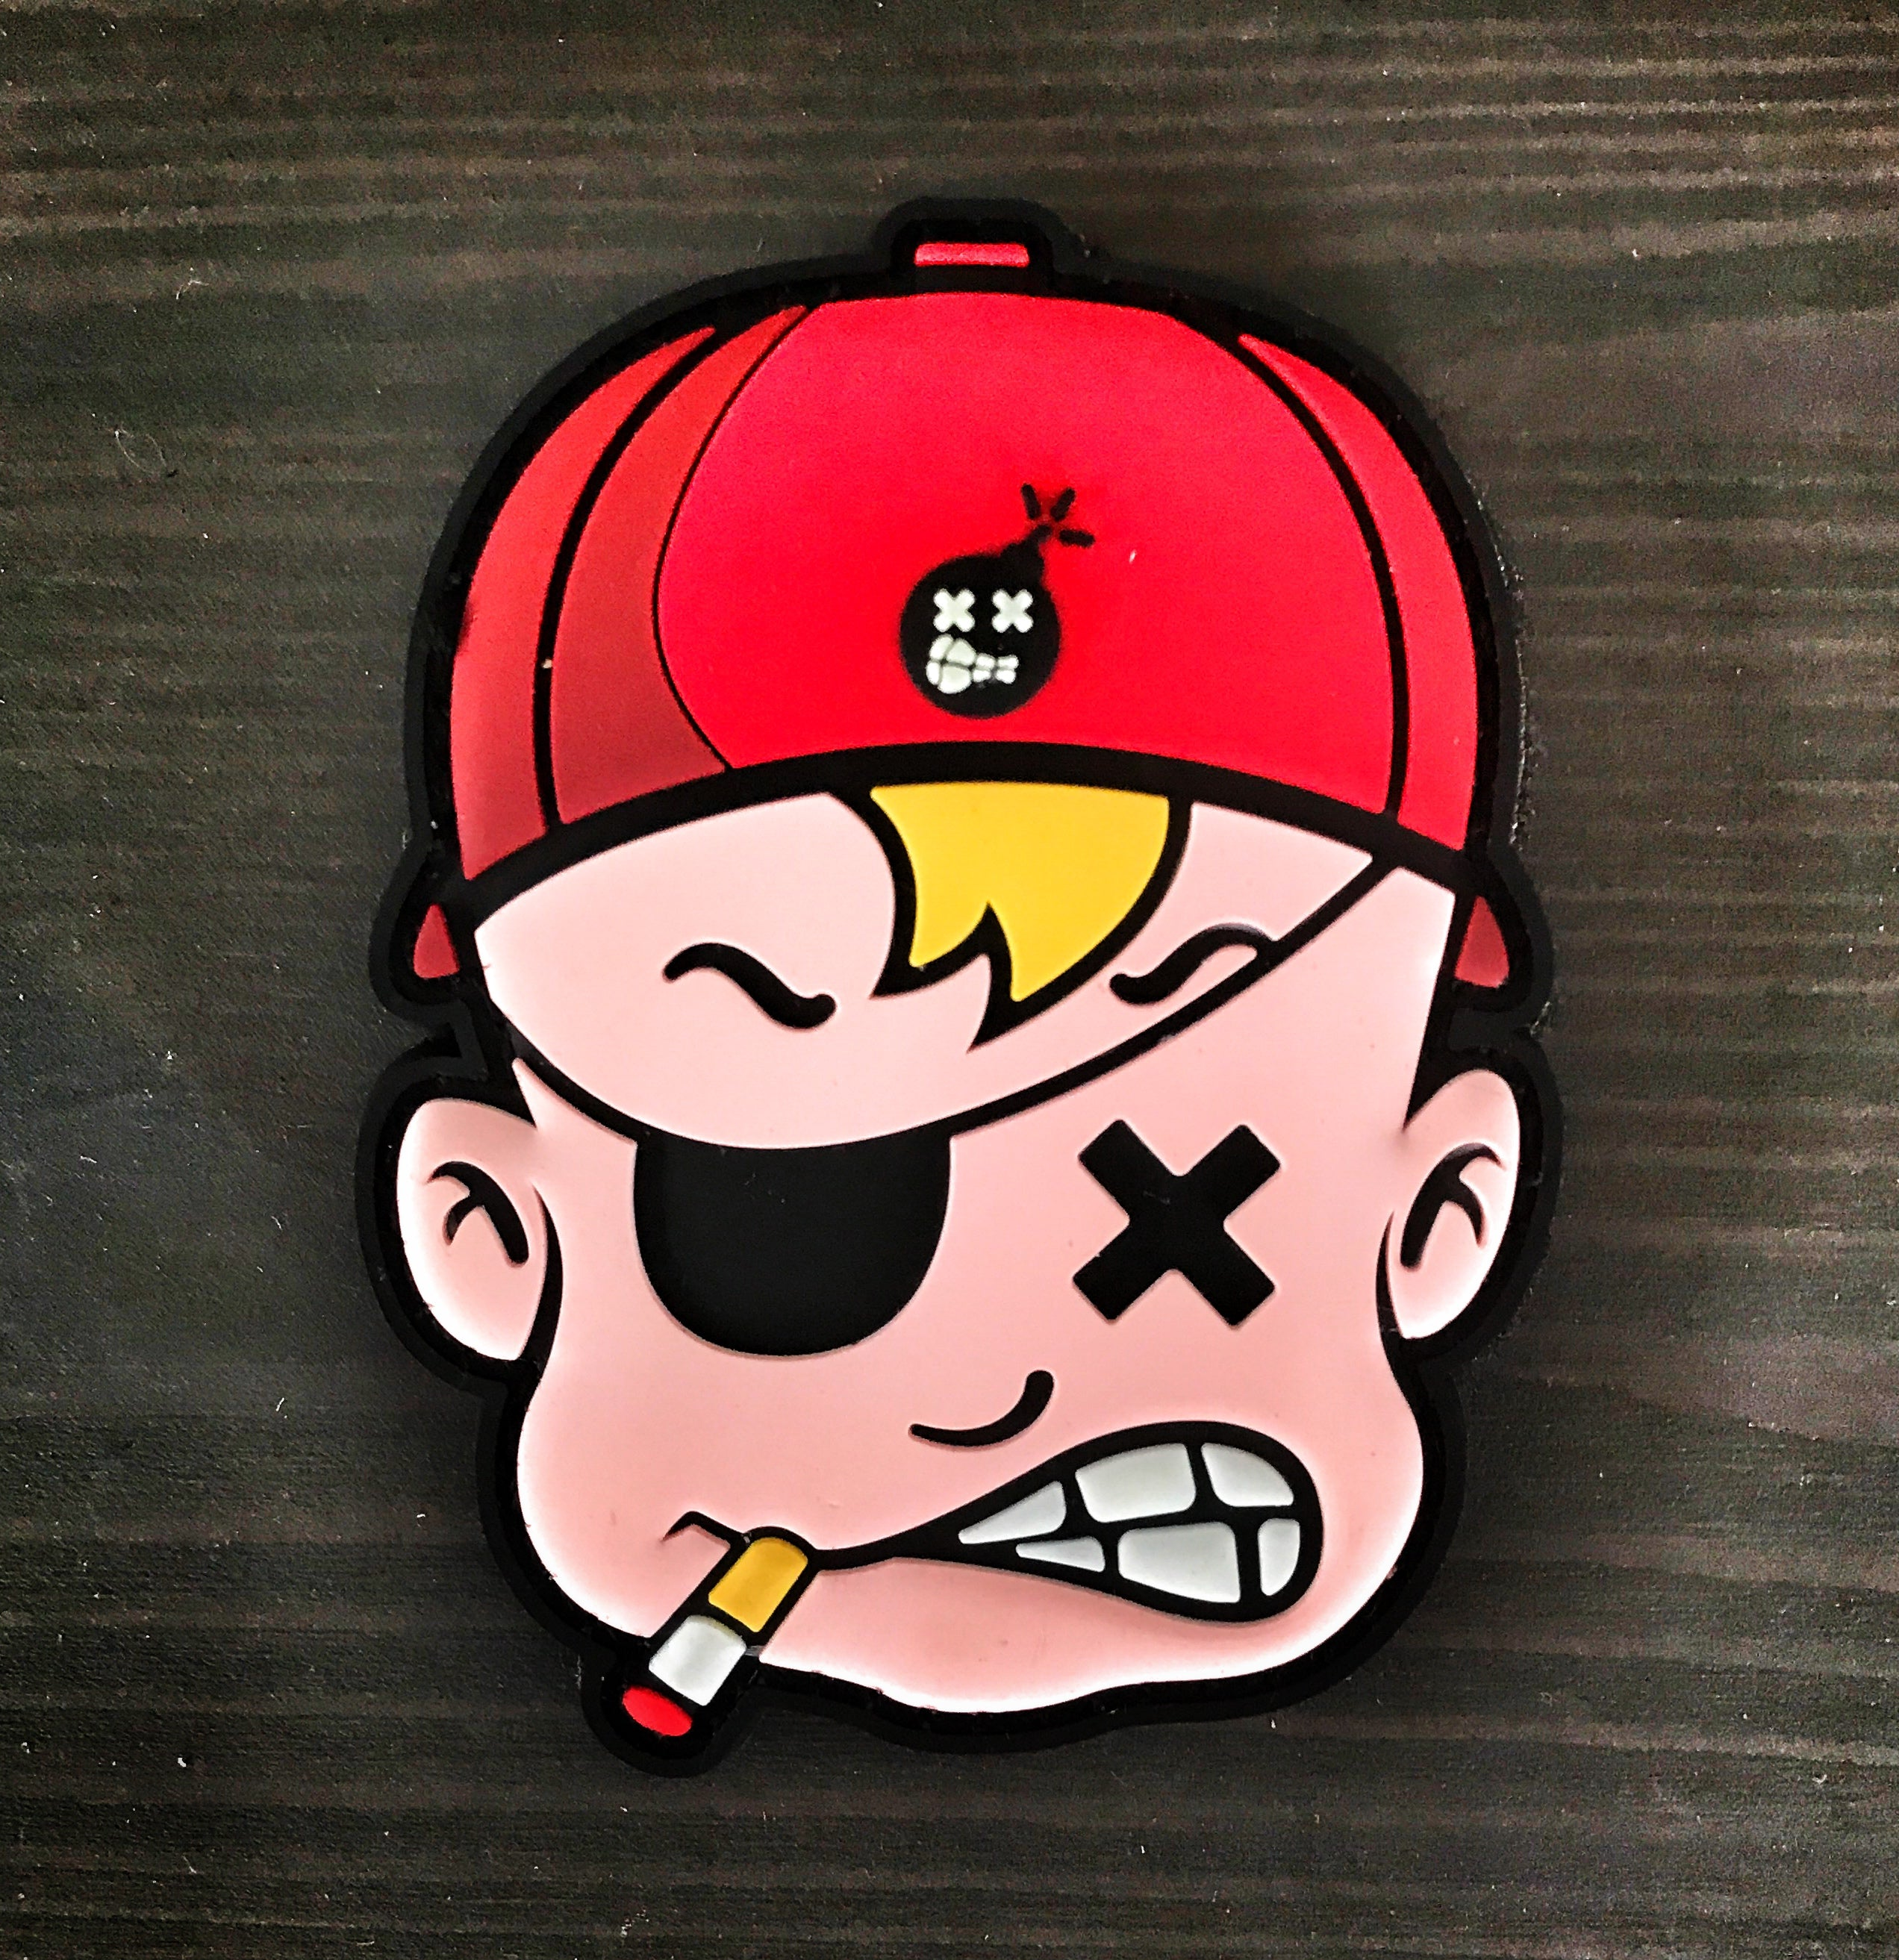 Dangerous Goods Danger Joe Mascot PVC Morale Patch